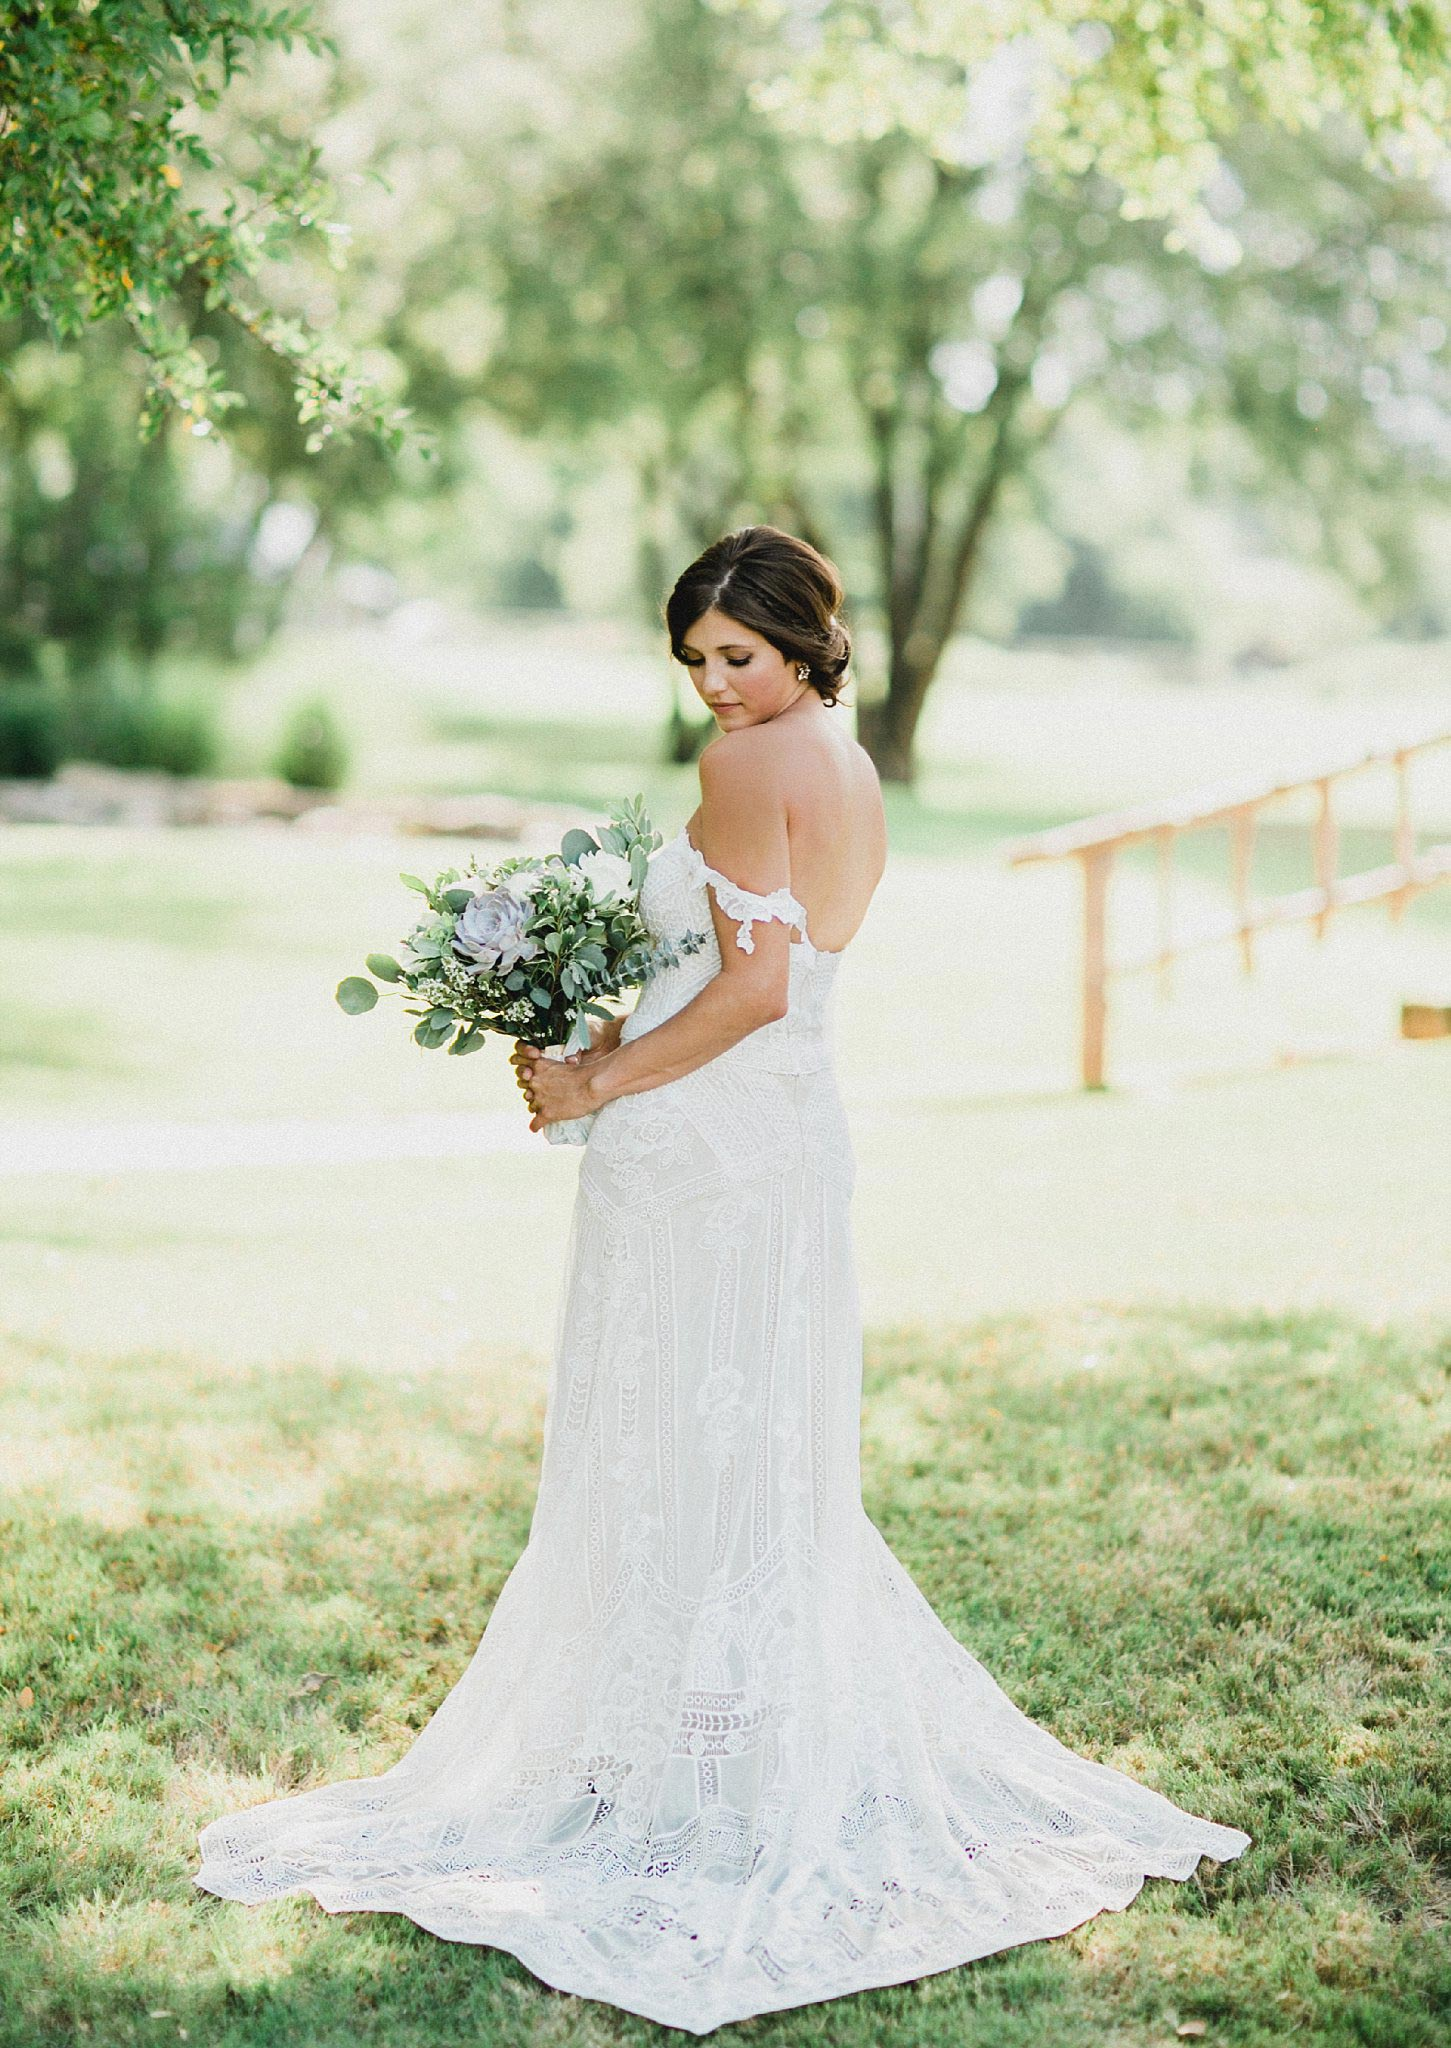 Bride in boho lace dress holding a light greenery bouquet